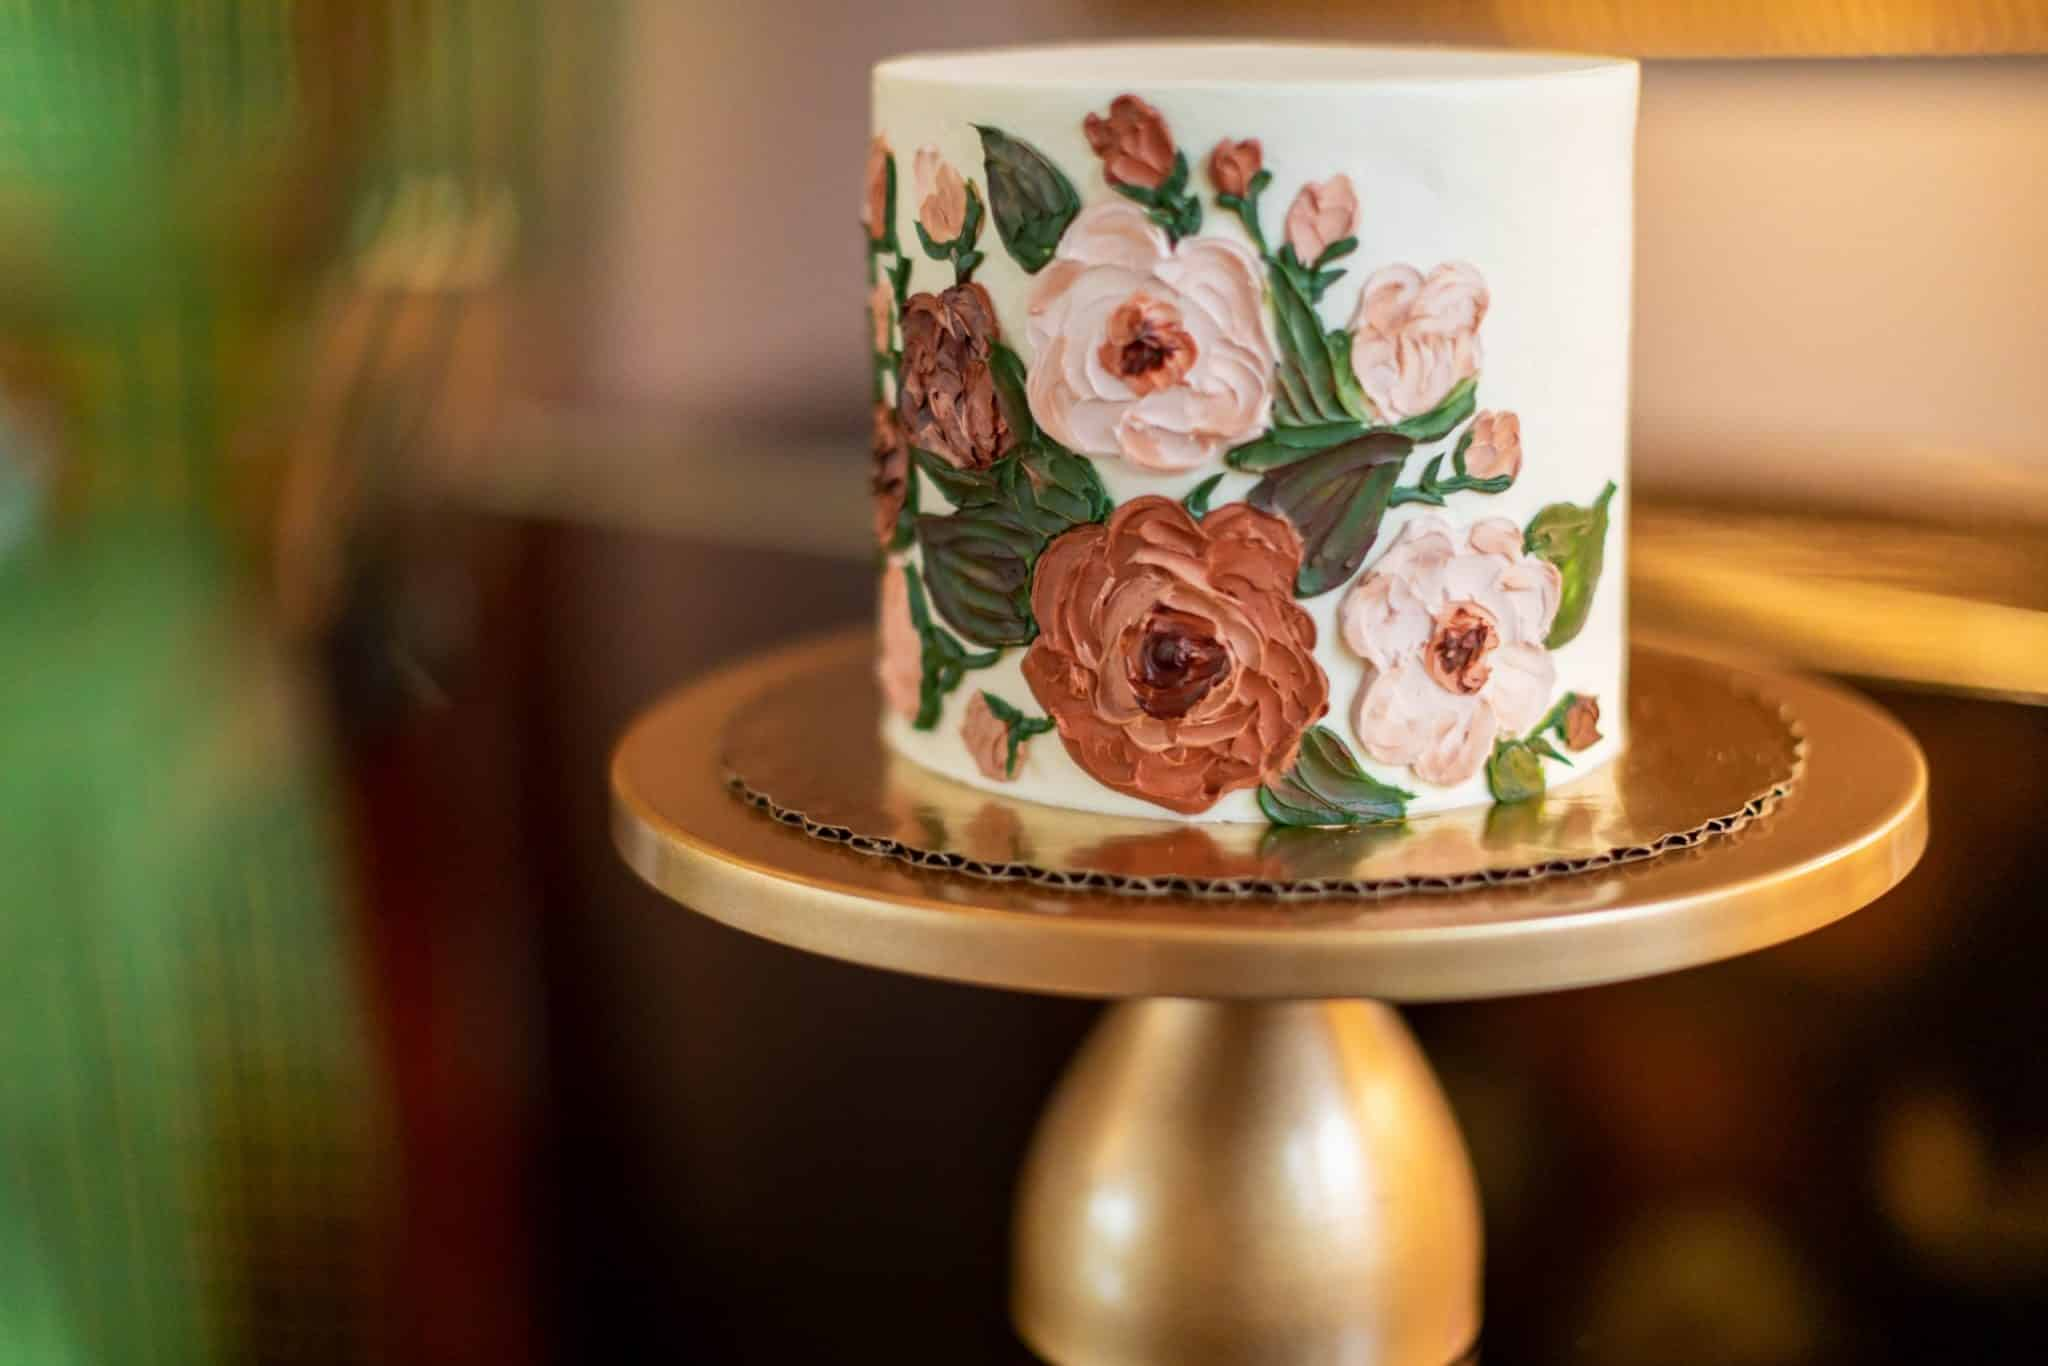 Wedding cake with floral icing patterns